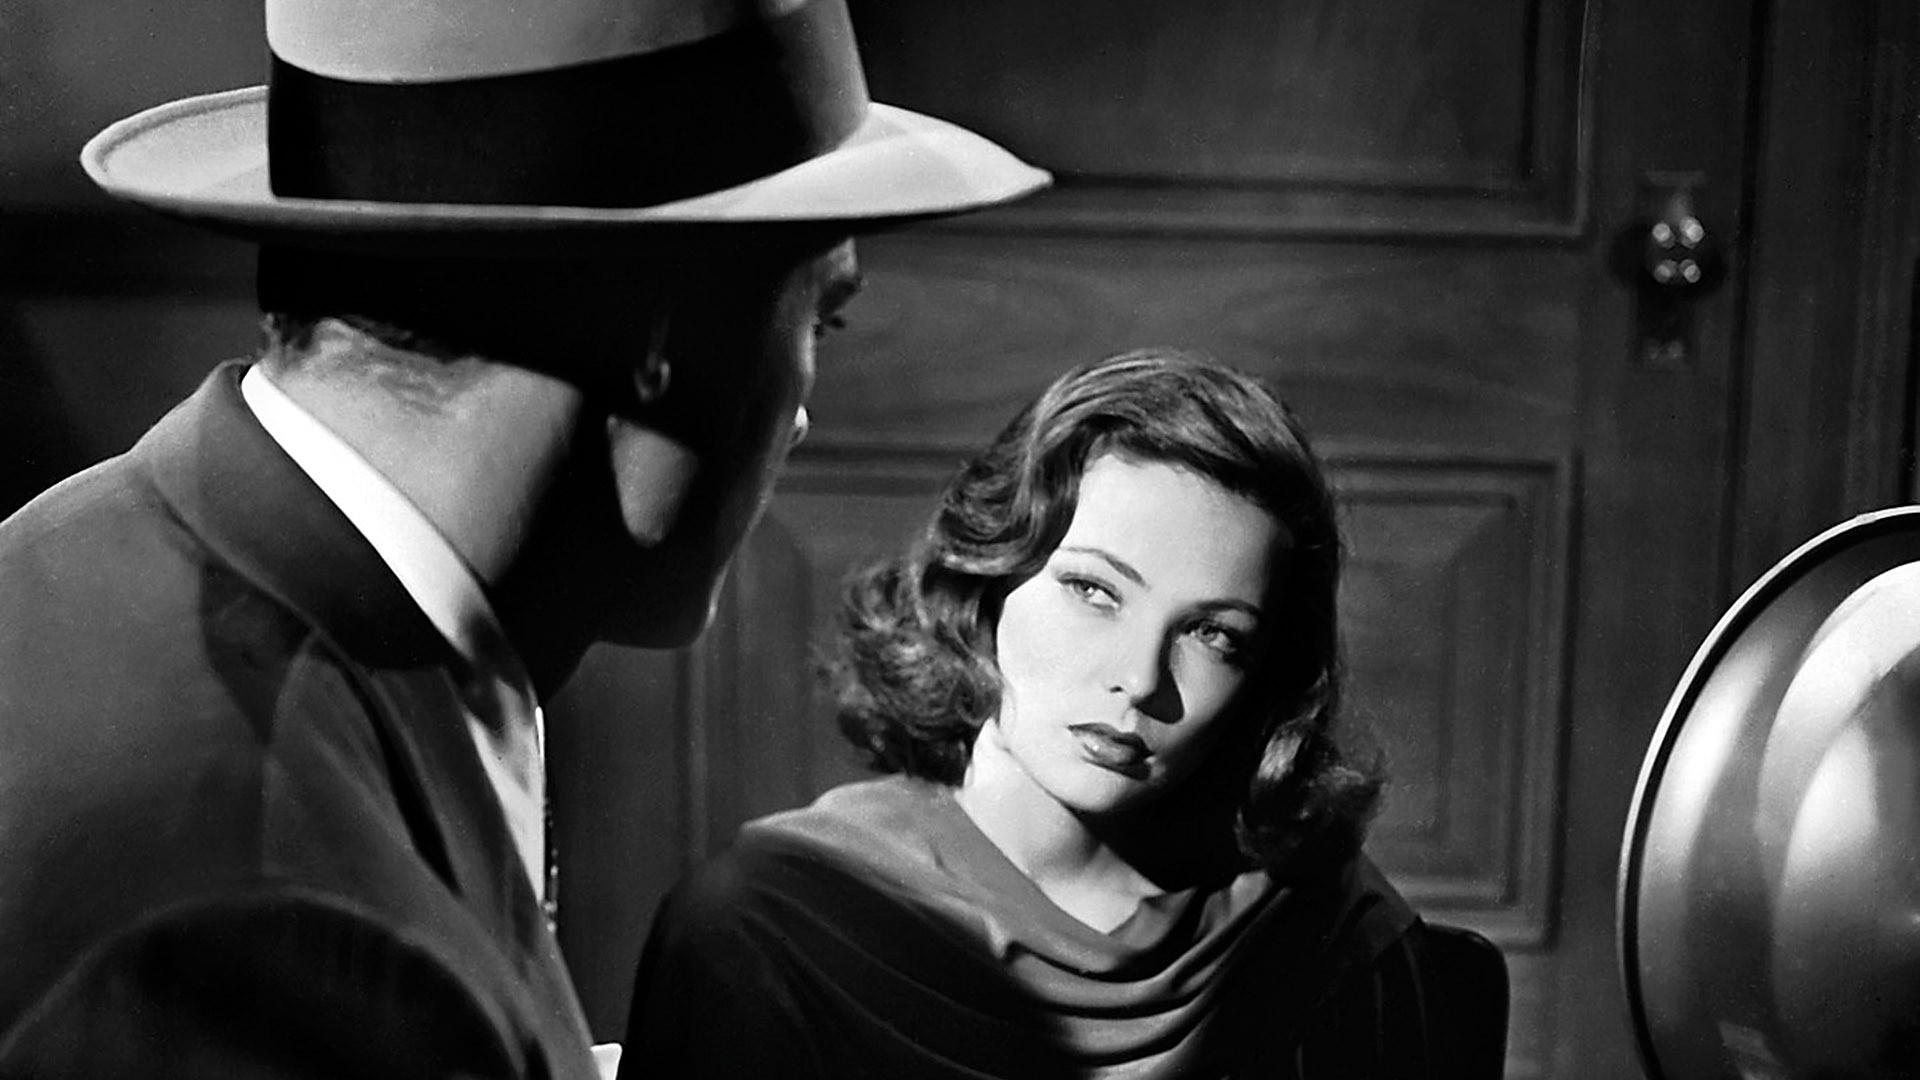 film noir essay film essay topics film essay topics film analysis  the top detective films of all time the blog